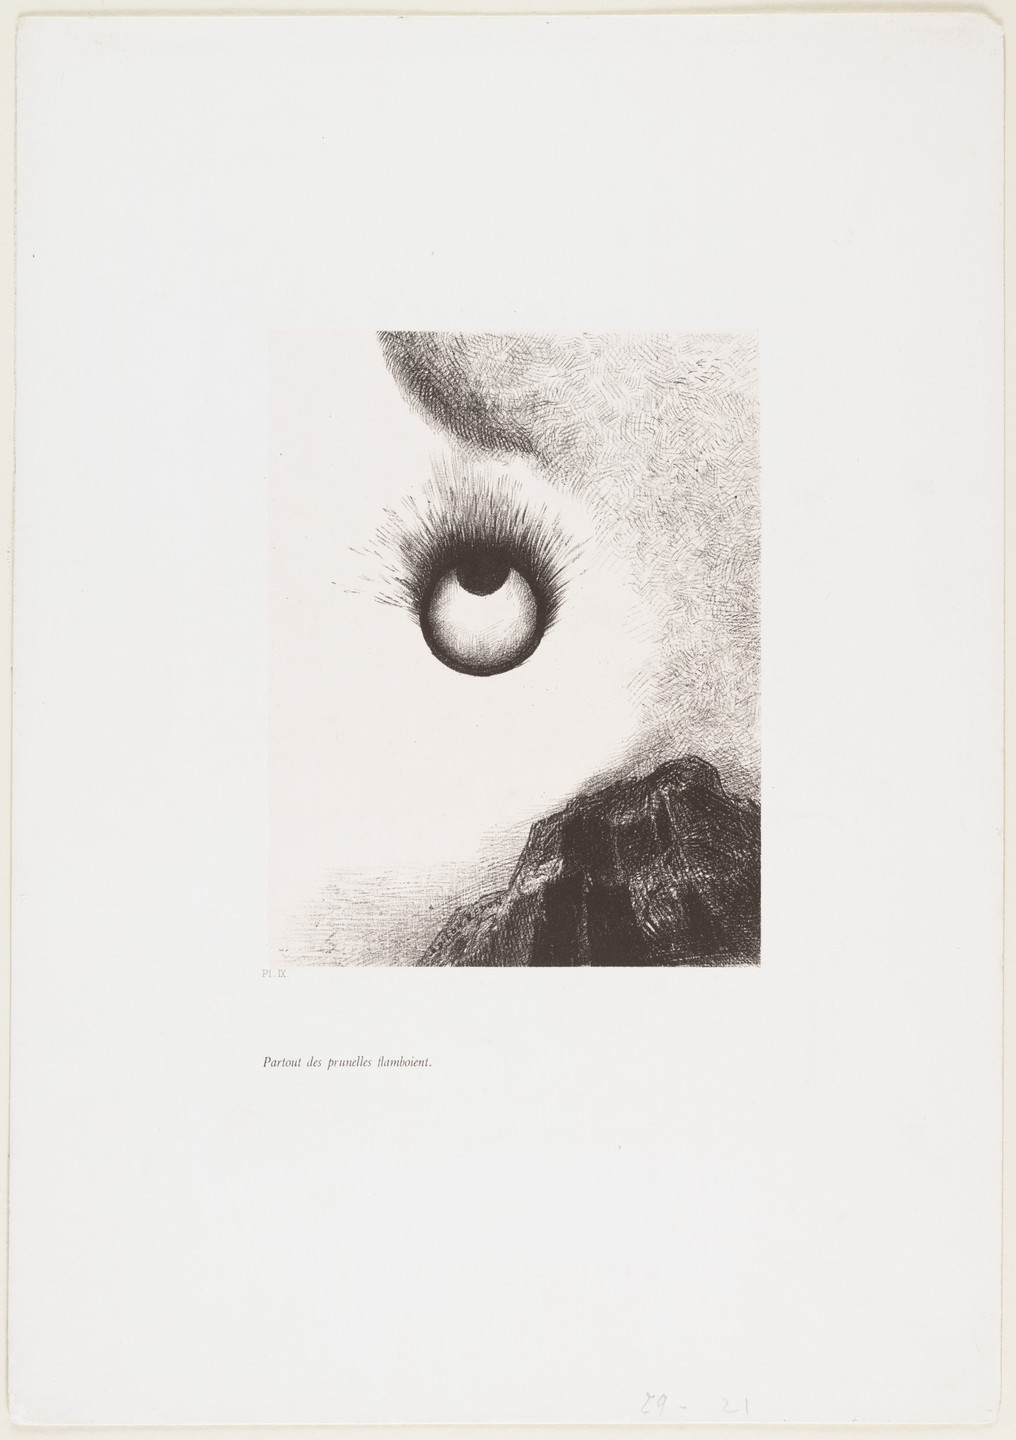 Odilon Redon. Everywhere Eyeballs Are Ablaze (Partout des prunelles flamboient) from The Temptation of Saint Anthony (La Tentation de Saint-Antoine). 1888